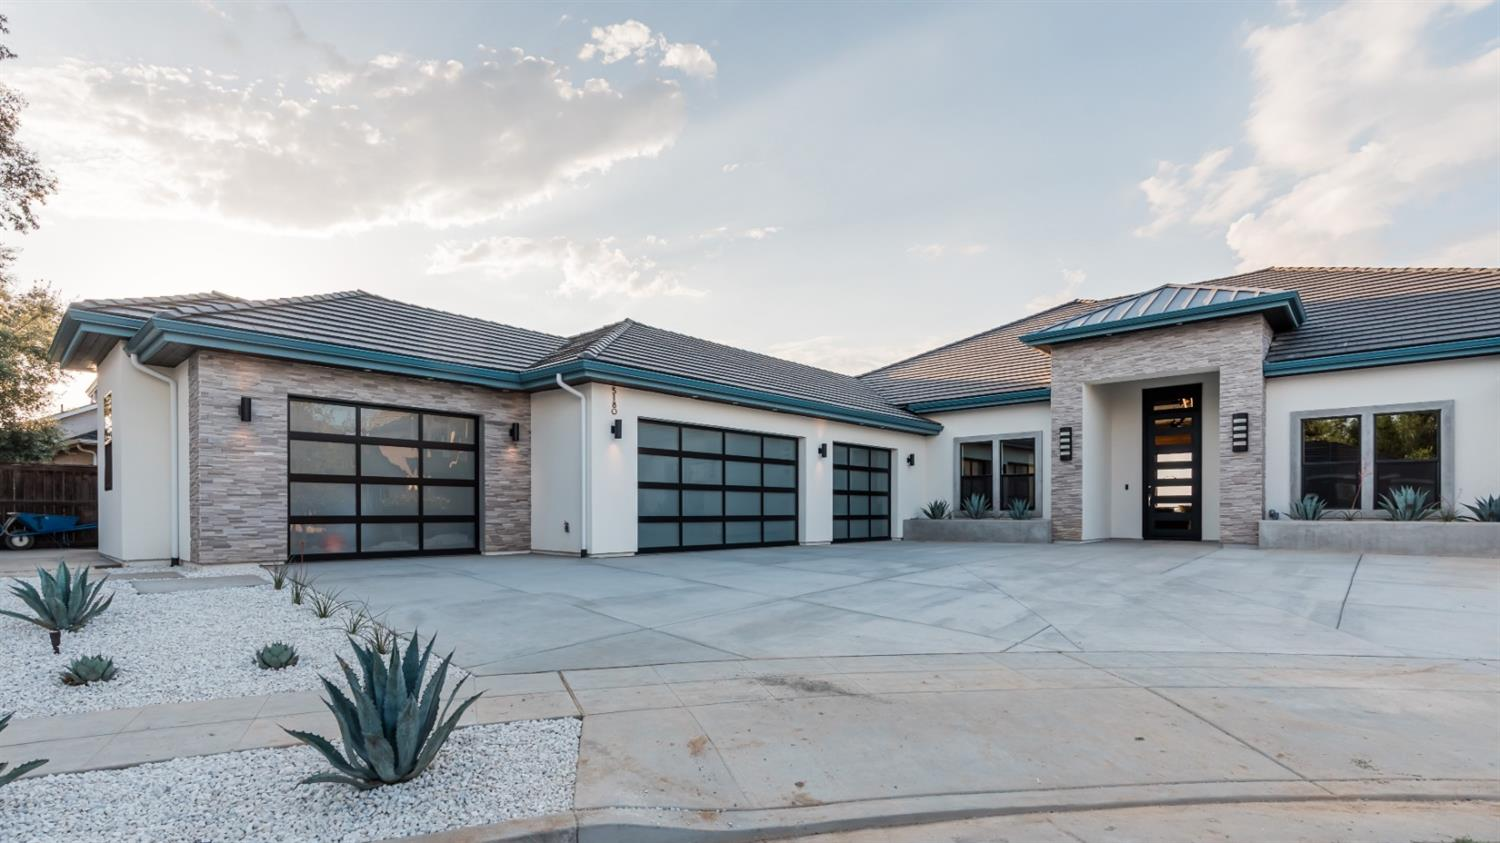 When you see this beautifully designed contemporary one of a kind home you will need to stop & remind yourself where you are. With 4BD, 3 1/2BA 3464 sq ft, w/ grand-views of the Sierra's & San Joaquin River, you will want to experience the sites from everywhere inside & out. Private terrace on the bluff w/ its personal fire pit. This home represents the best of indoor/outdoor bluff living. When you enter this private oasis you will be taken w/ the open floor plan, spaces for entertaining, gourmet chef's kitchen, walk-in pantry & topped off w/ rich quartz counter tops. The spacious family room boasts 42' of glass sliding doors opening to the backyards unbelievable views! The Lavish master suite w/ his/hers walk-in closets, stainless soaking tub & heated marble floors. 4 car garage on 20,000 sq ft lot is surrounded by drought tolerant landscape.This hidden gem is proudly built by Butler Construction.